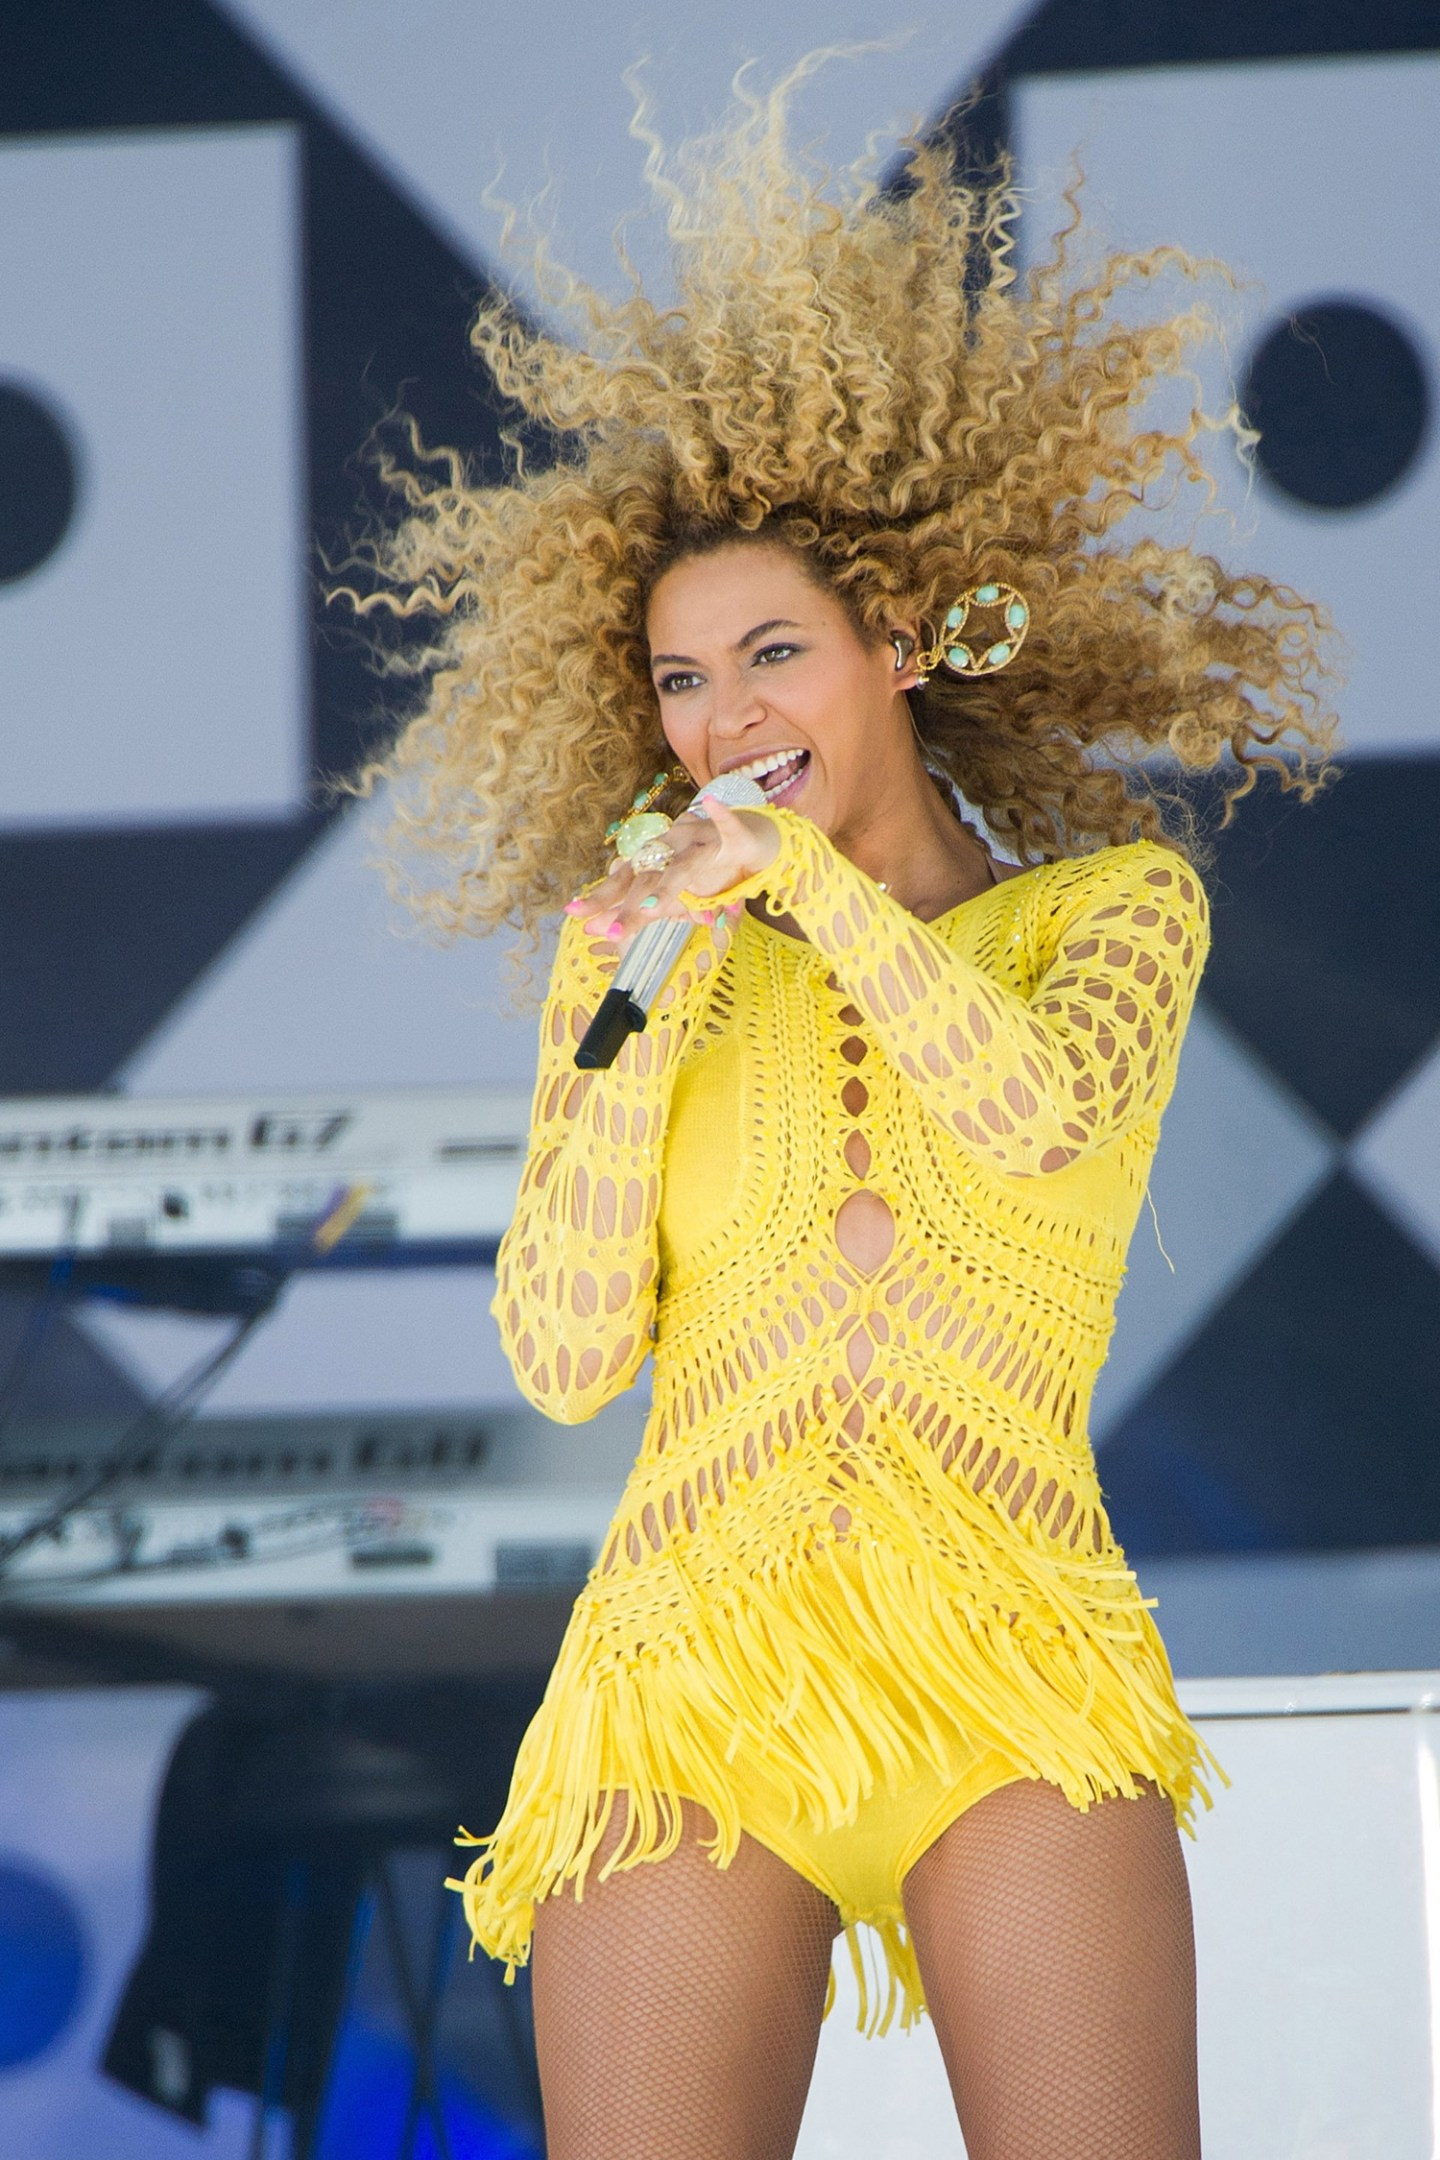 Formation Tour Starts Today: Get Ready with Beyonce's top 5 Performances of All Time